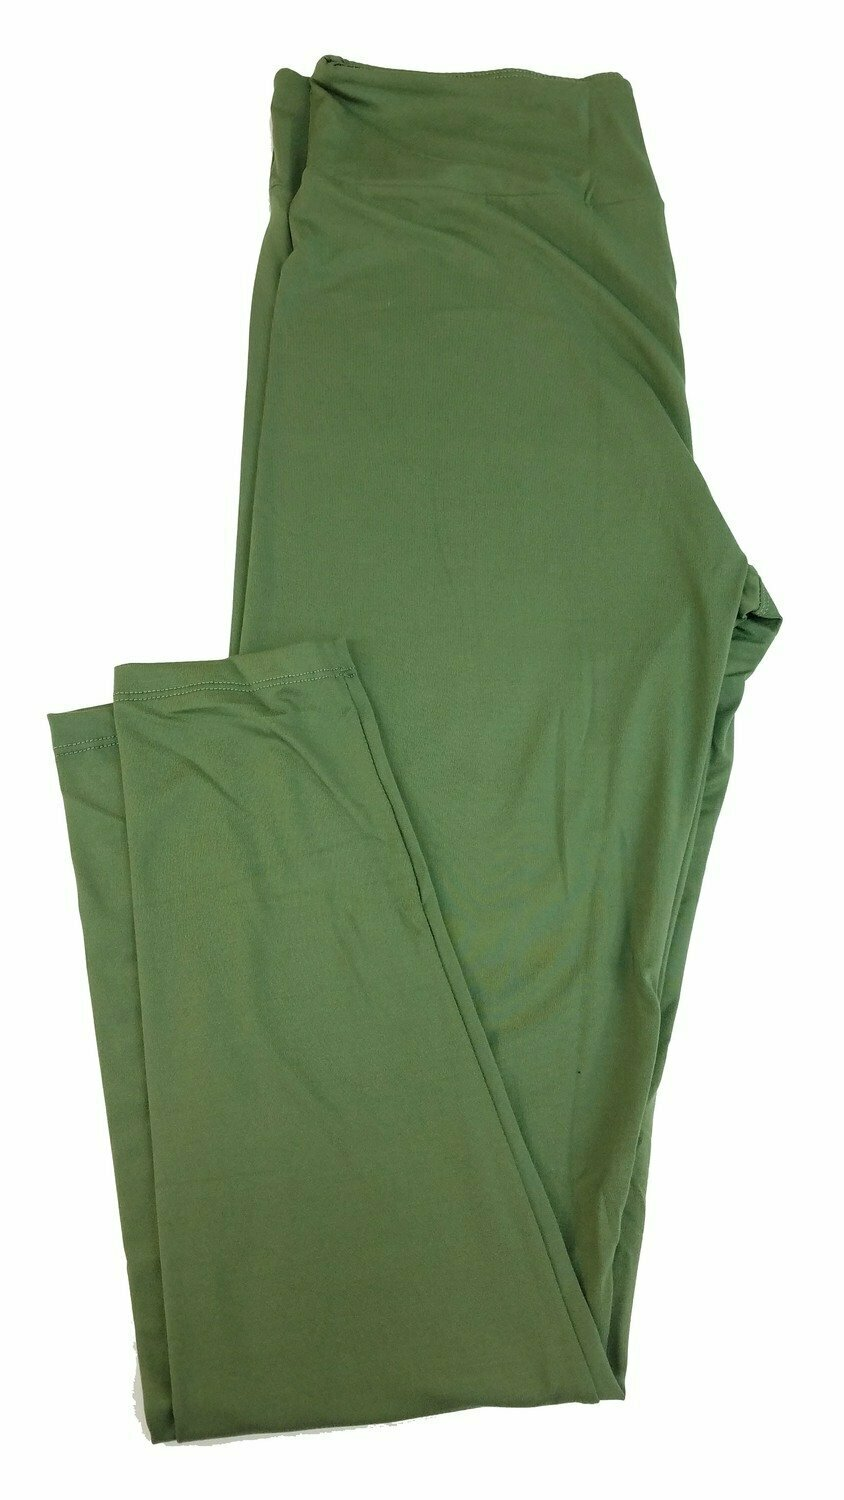 LuLaRoe Tall Curvy TC Solid Army Green Buttery Soft Leggings fits Womens sizes 12-18